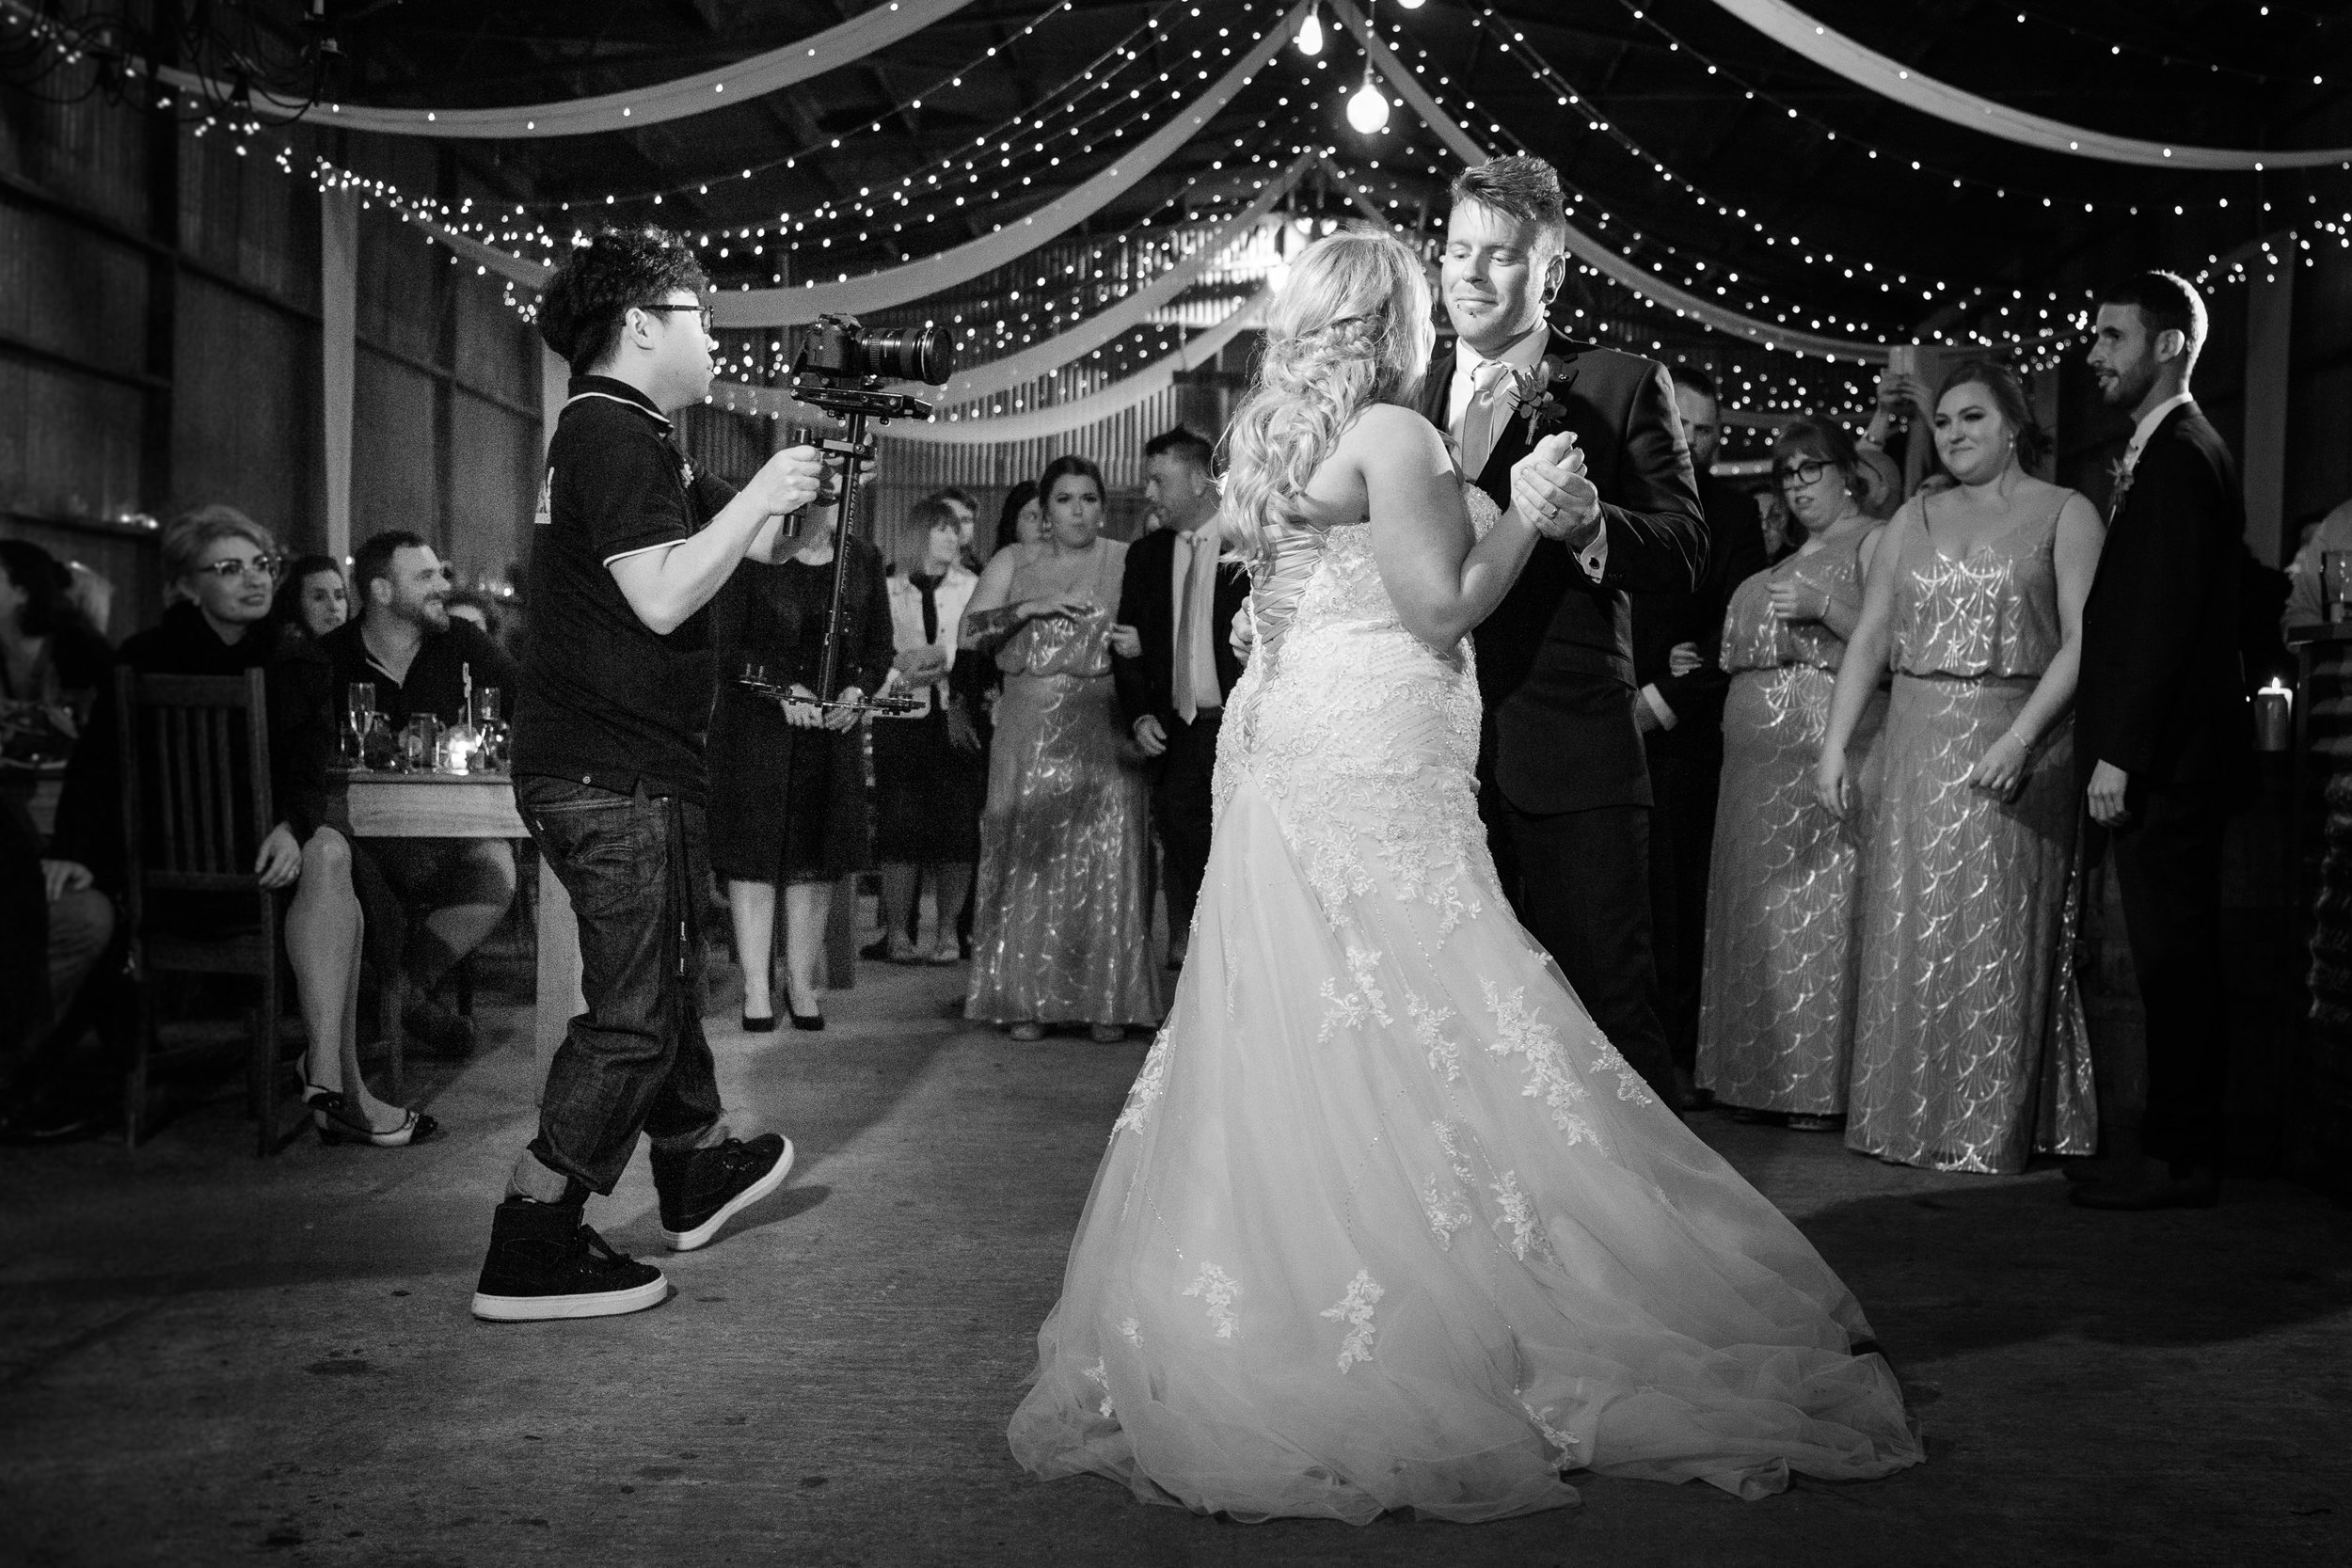 Behind the scenes shot of my good friend, professional videographer Henry Q from Hitman Productions capturing the first dance.